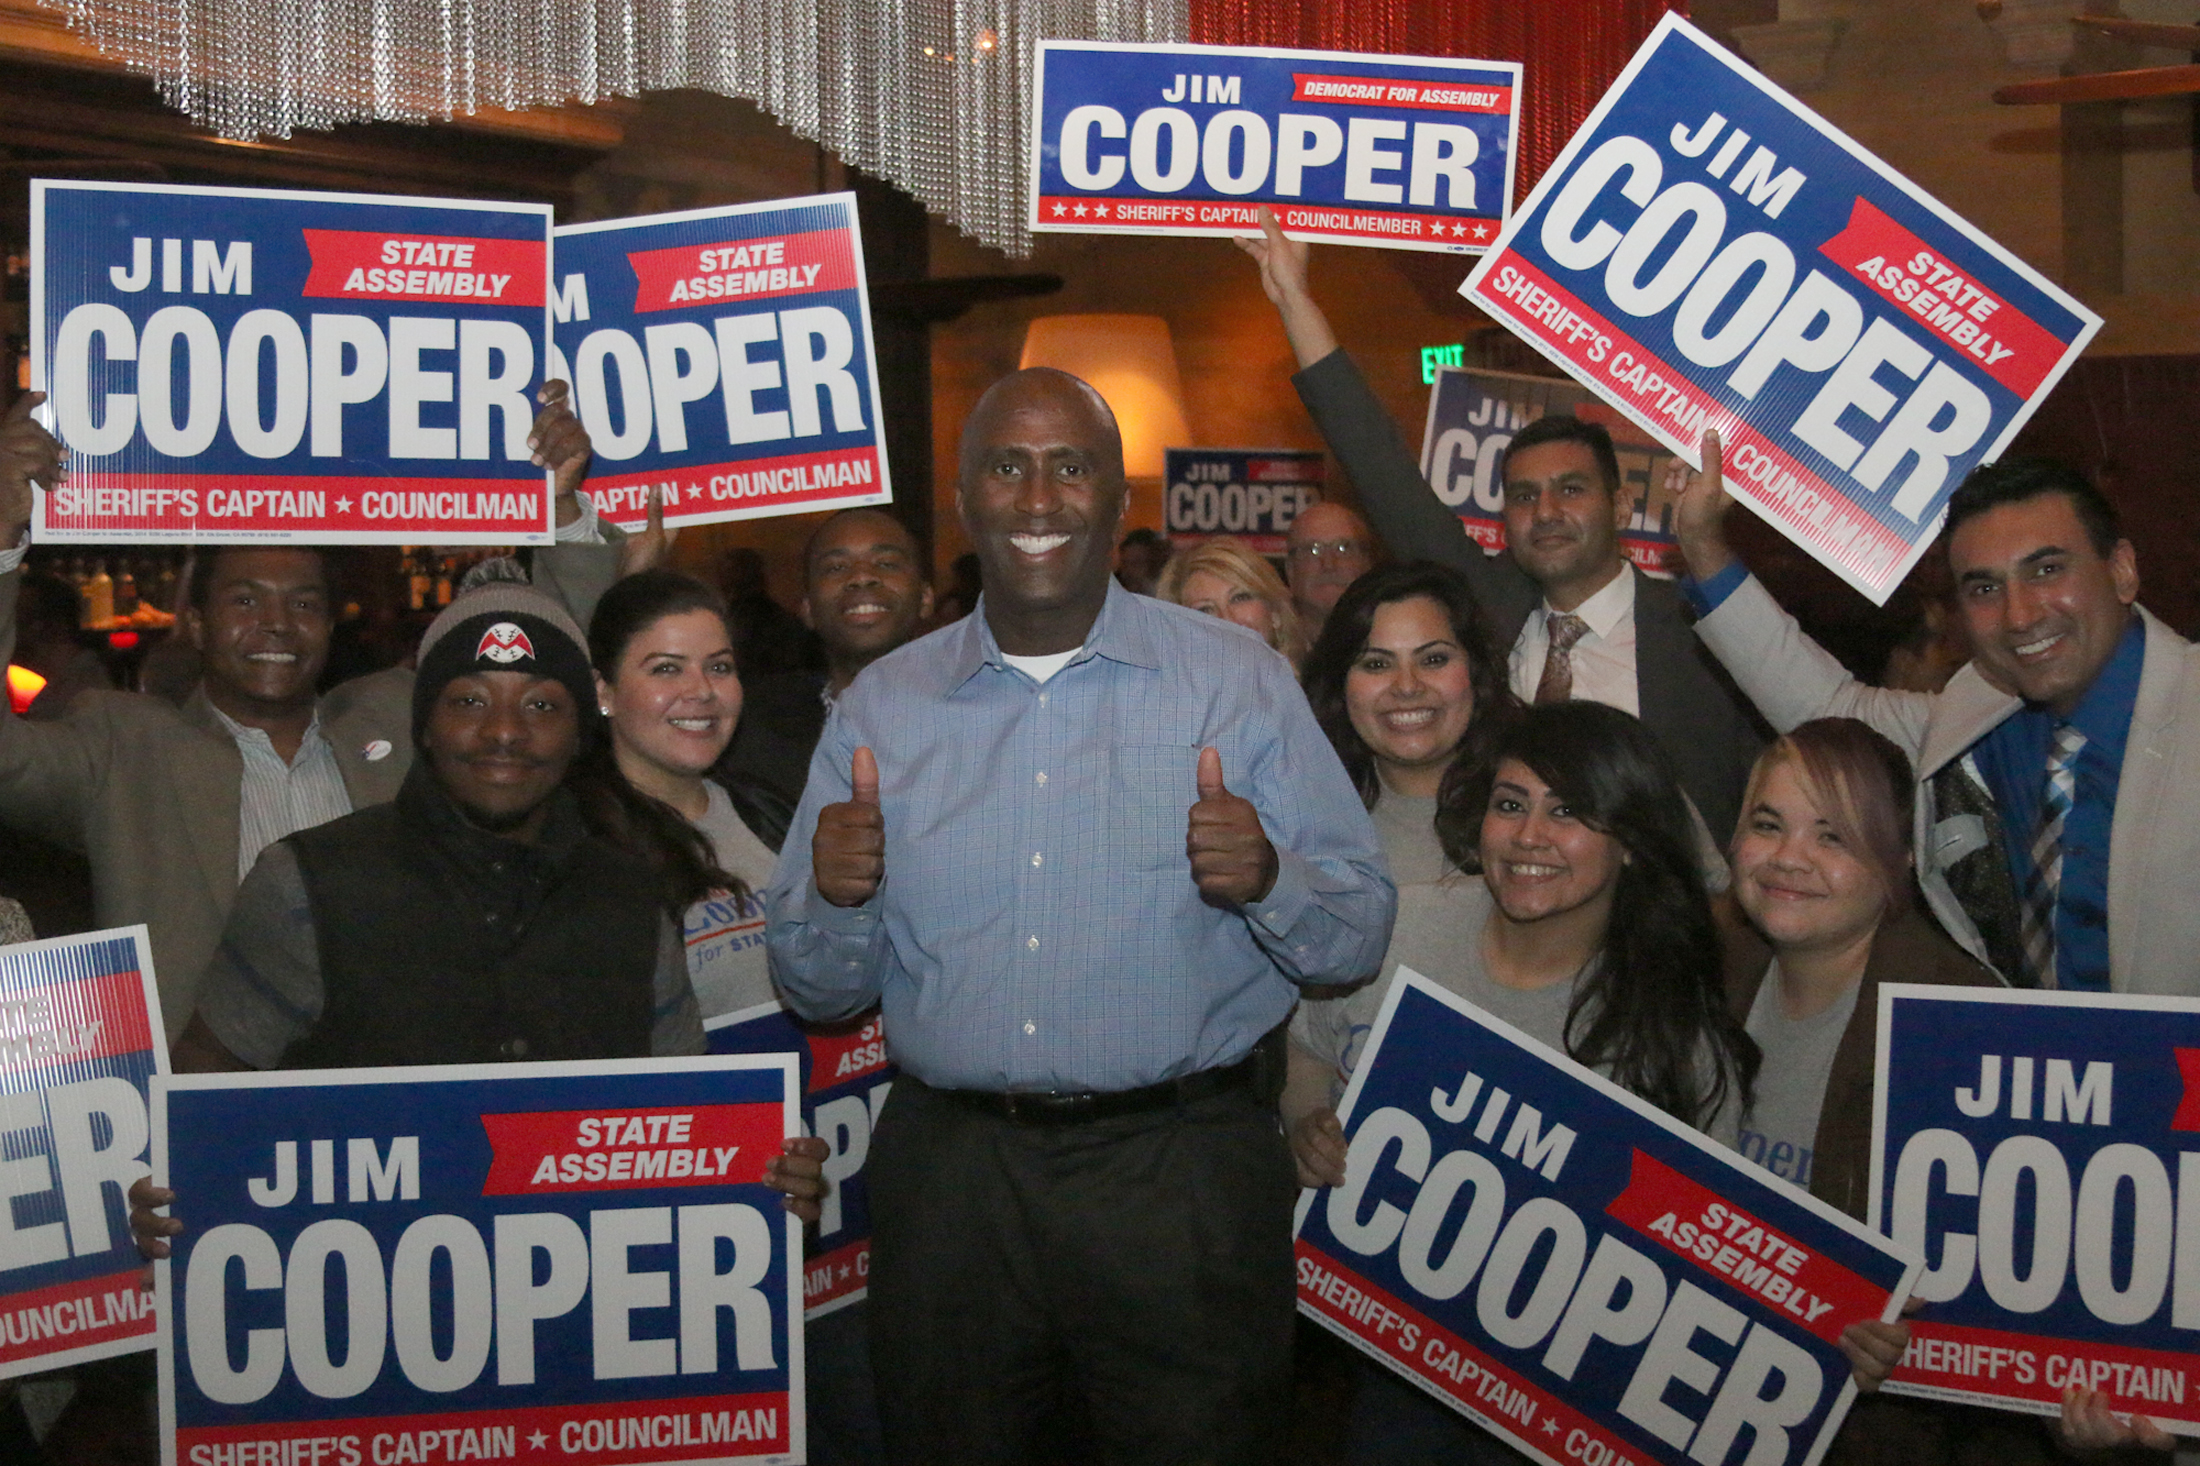 Jim Cooper and his supporters were elated to see the Elk Grove Councilman in a commanding lead for State Assembly District 9. Cooper's viewing party was at Paesano's Restaurant in Elk Grove. (OBSERVER photo by Ray Johnson)